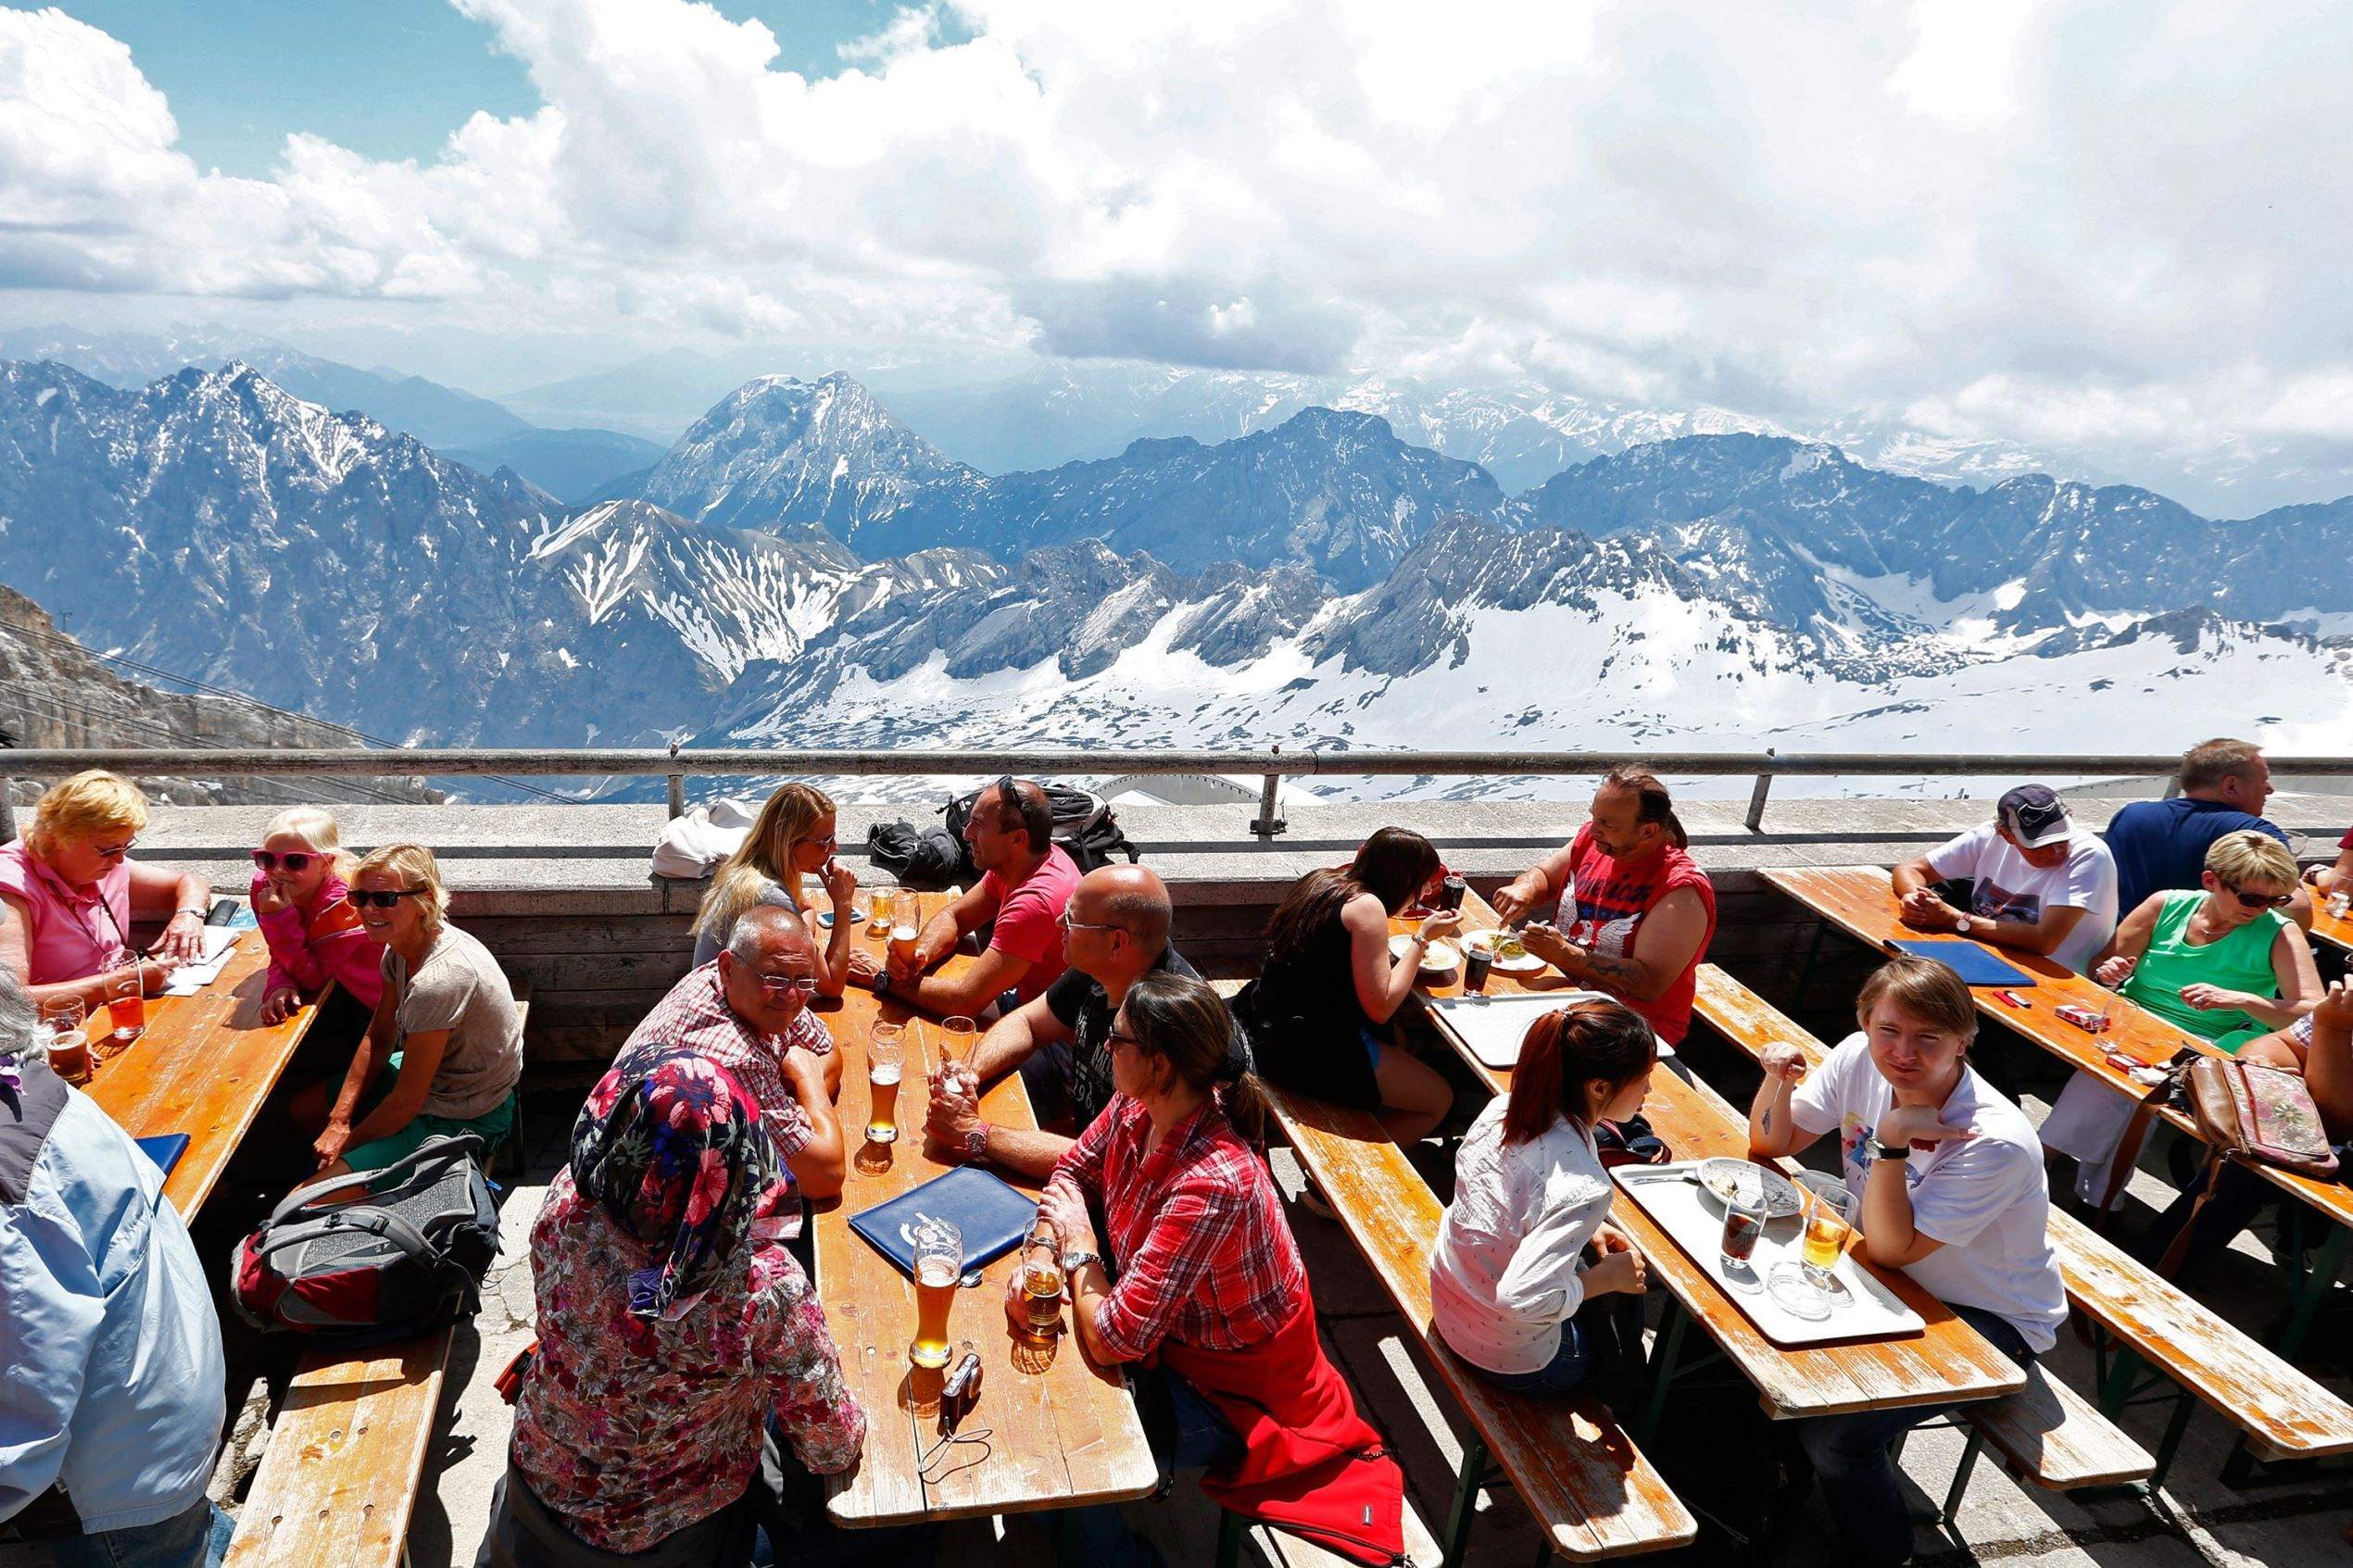 Grainau, Germany       Tourists enjoy sunny weather in Germany's highest beer garden atop of the 9,718 foot Zugspitze mountain in Grainau, Germany, on June 5.  2015